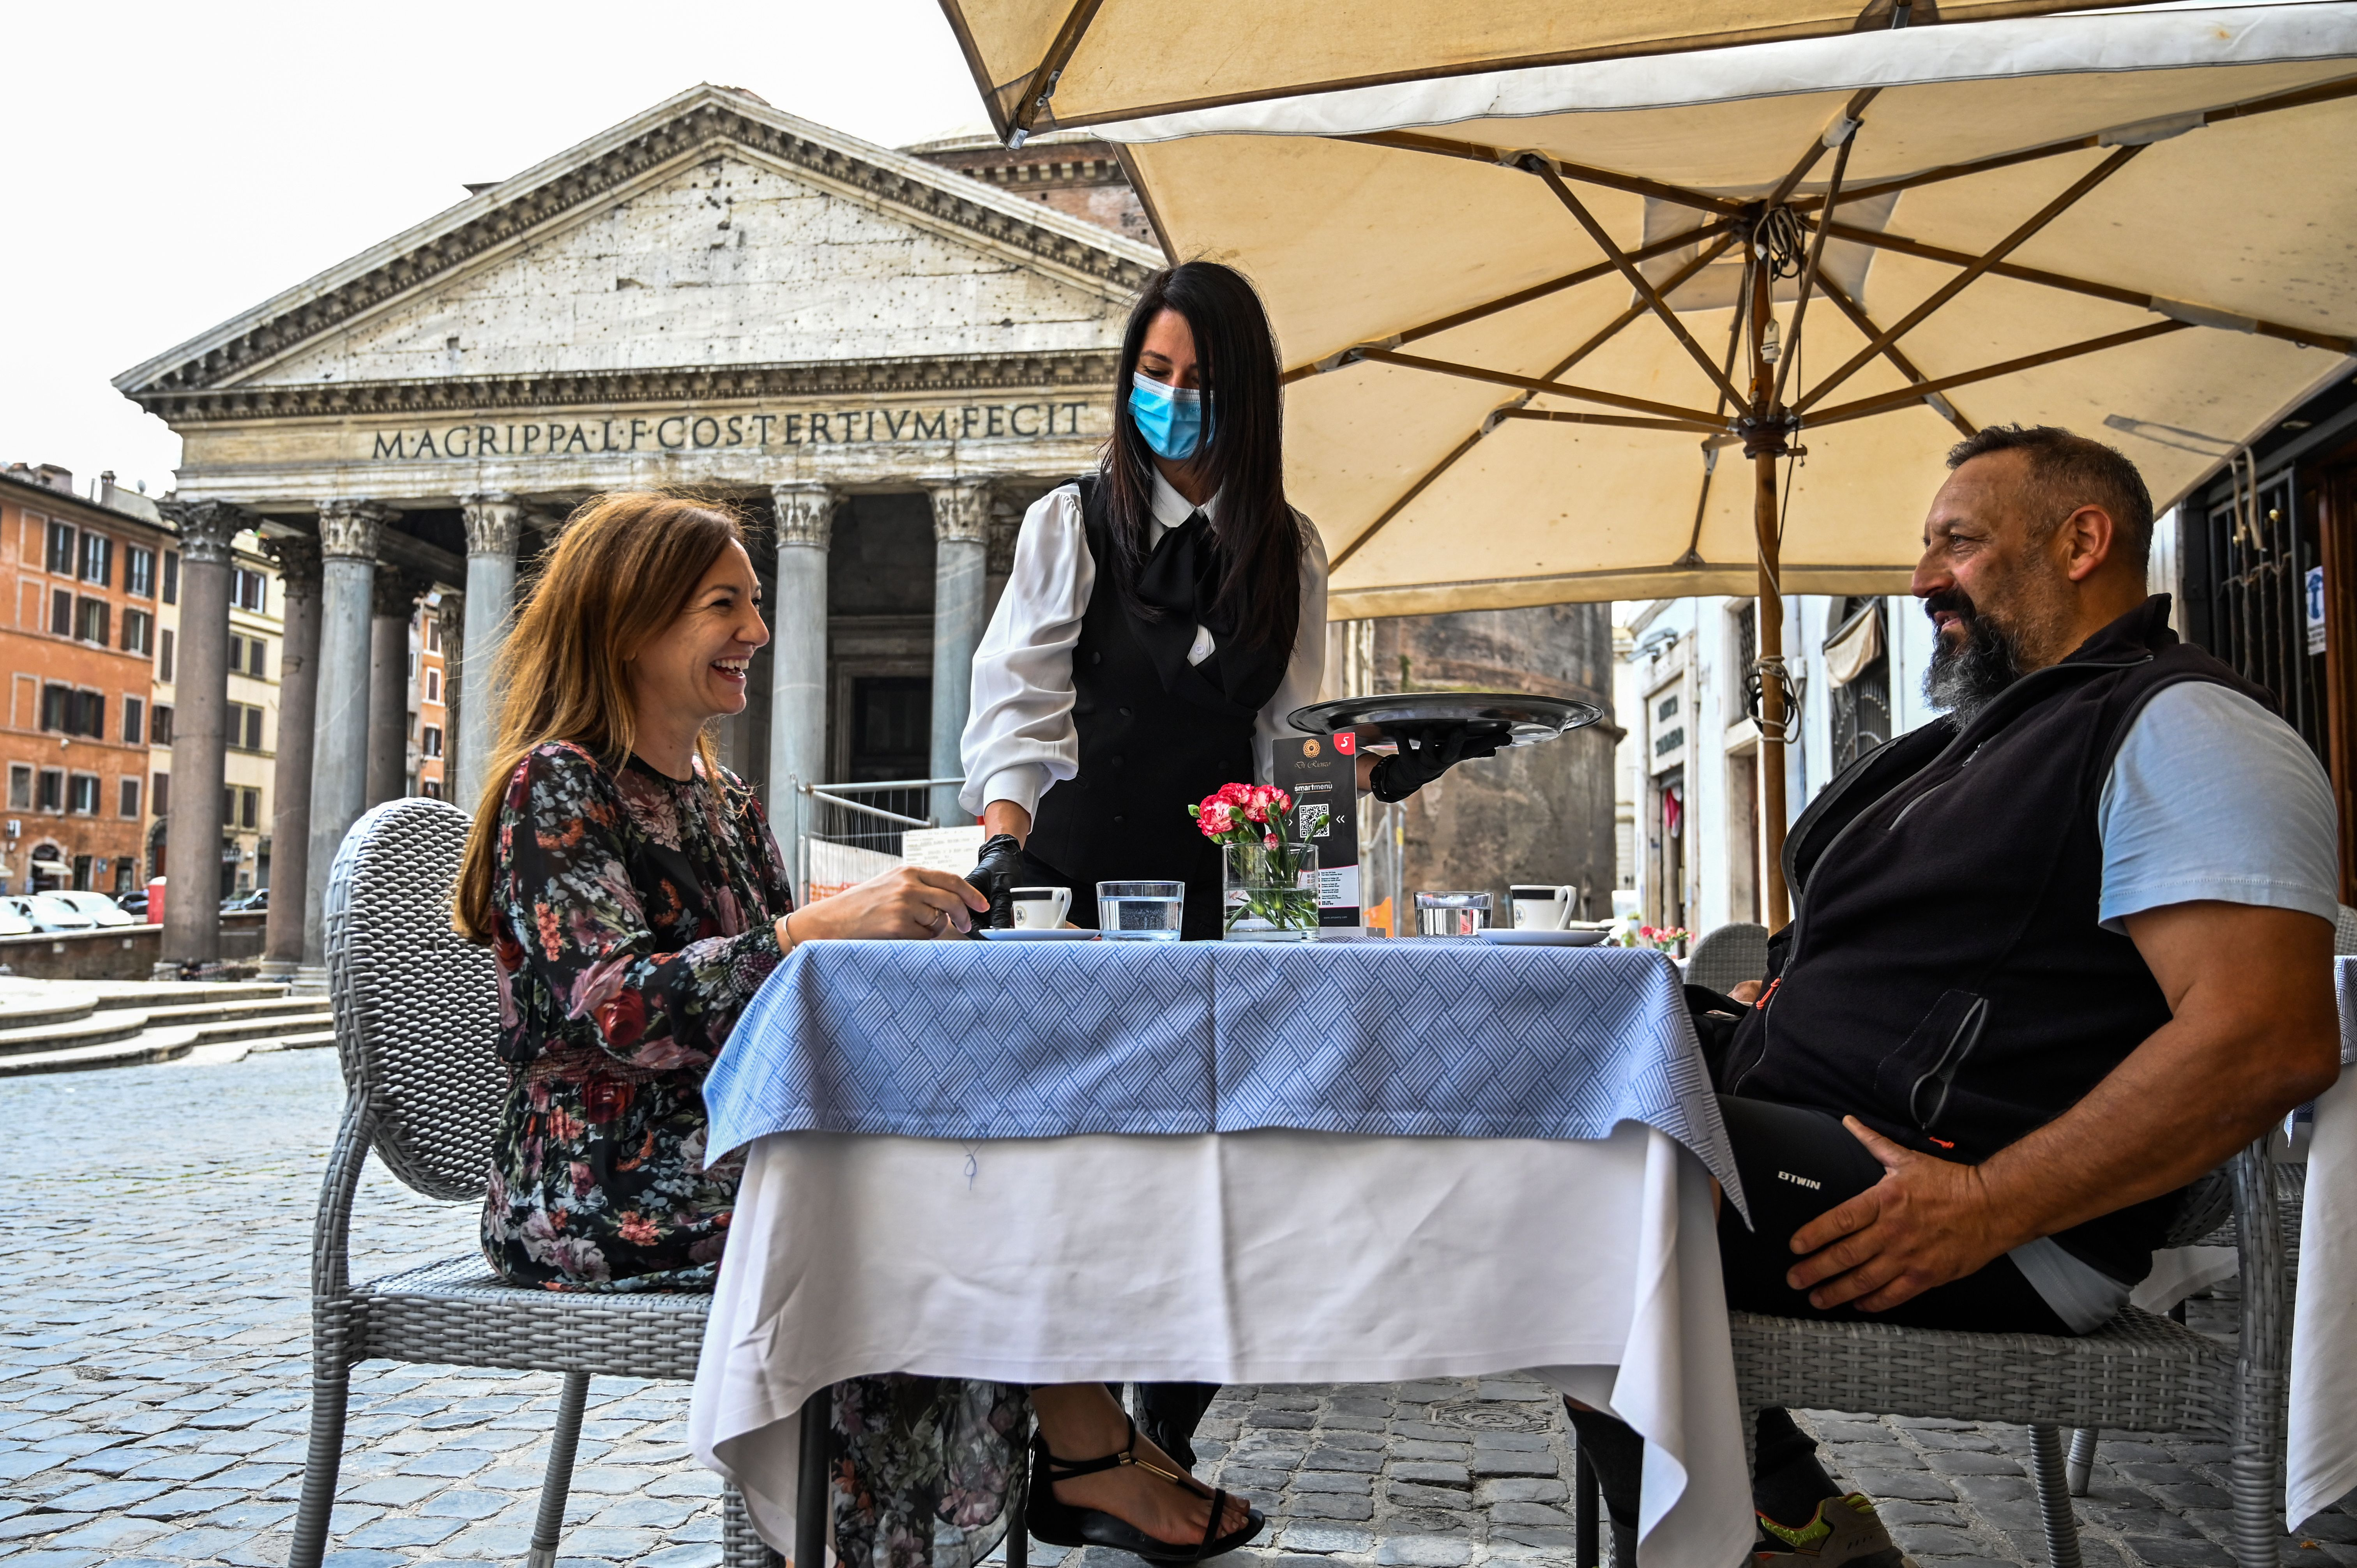 A waiter serves coffee to customers at a cafe terrace by the Pantheon monument in central Rome on May 18, 2020. (Photo by ANDREAS SOLARO/AFP via Getty Images)